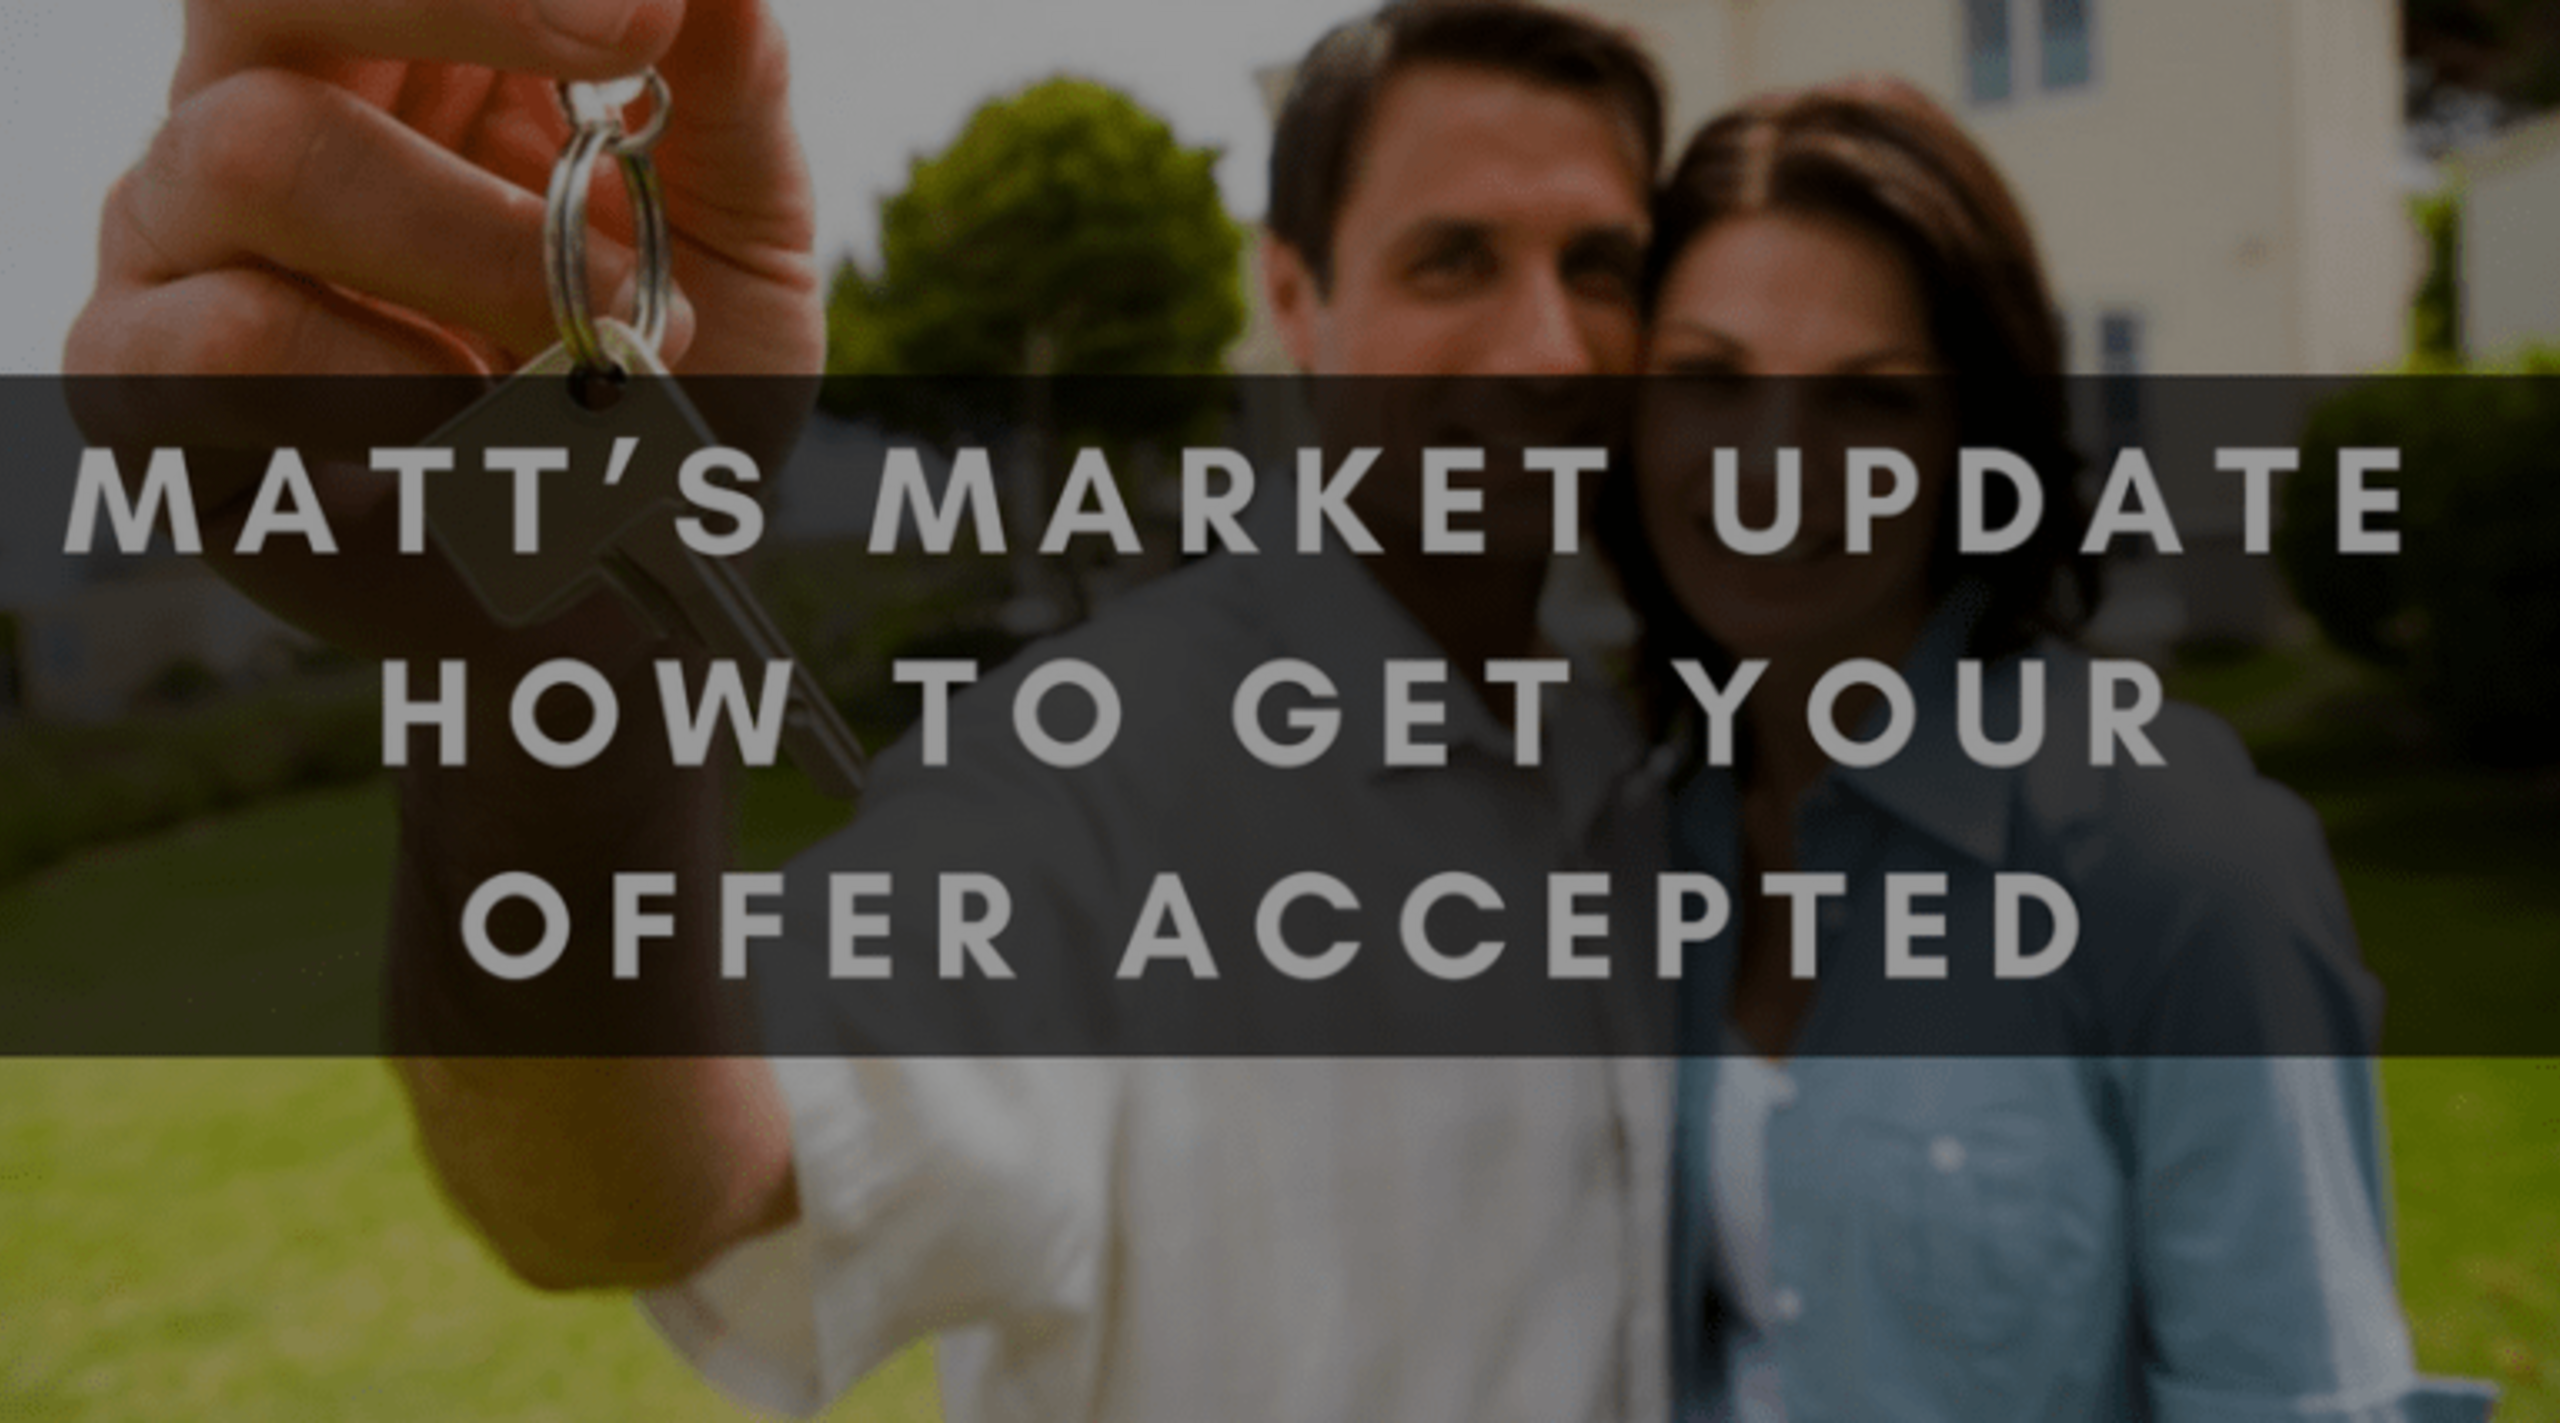 MATT'S MARKET UPDATE | HOW TO GET YOUR OFFER ACCEPTED